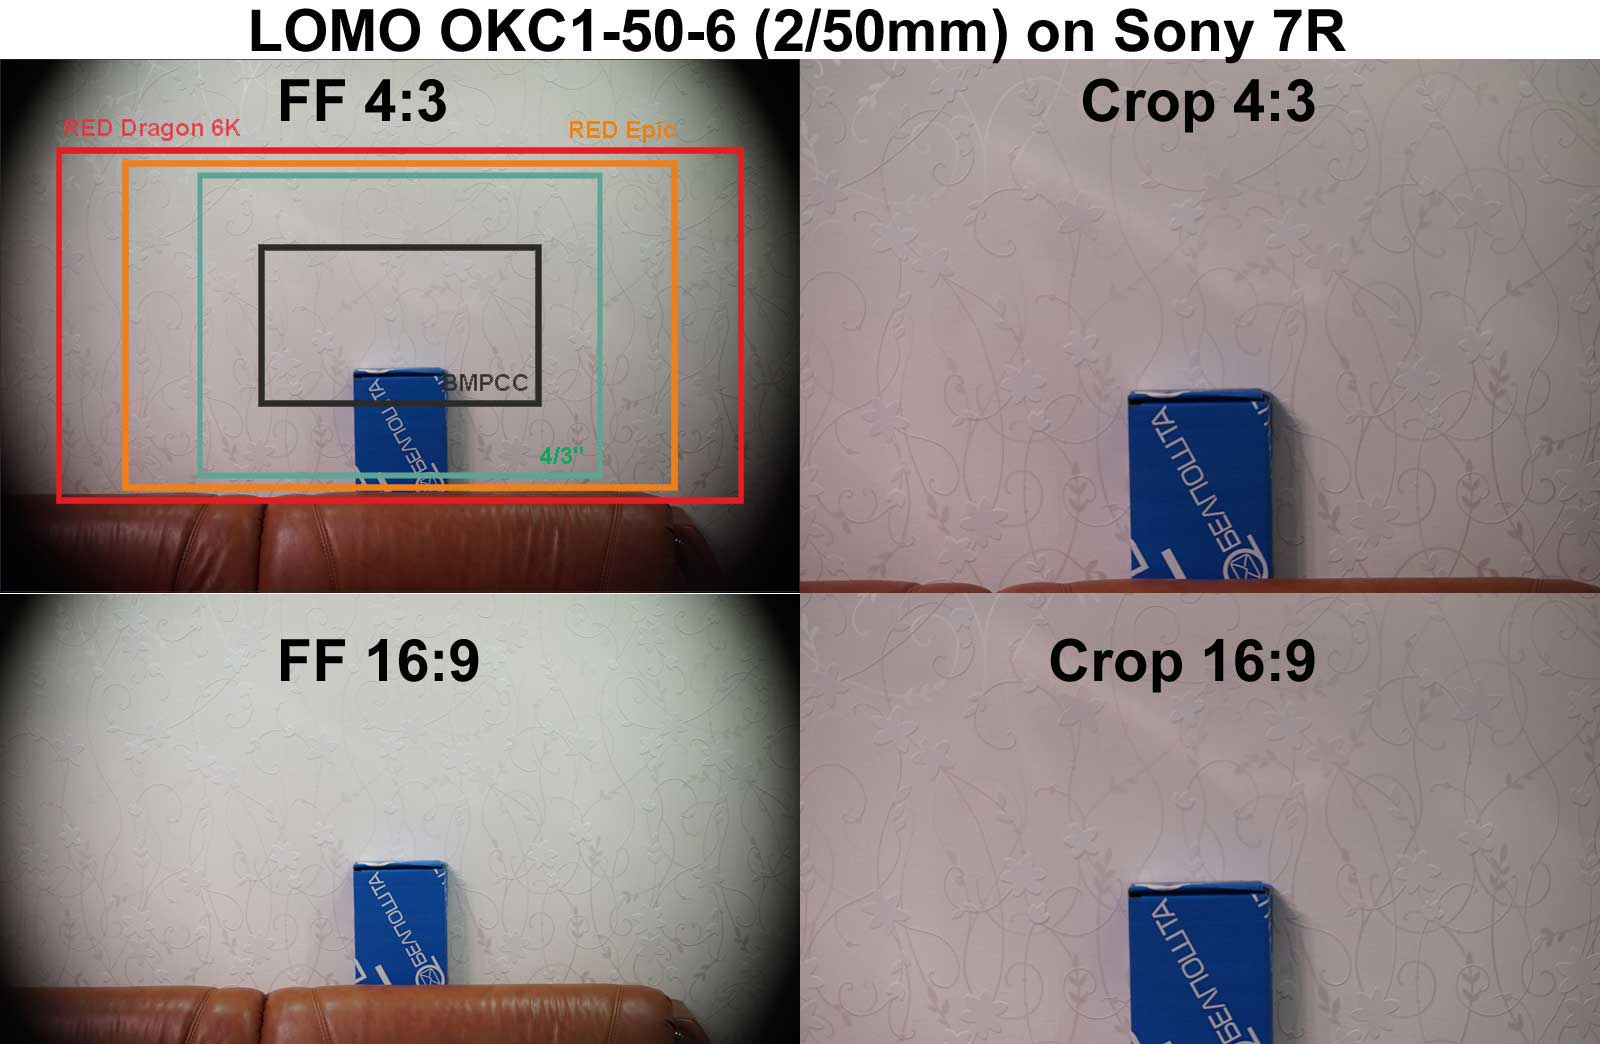 Coverage of LOMO OKC1-50-6 lens on Sony 7R camera